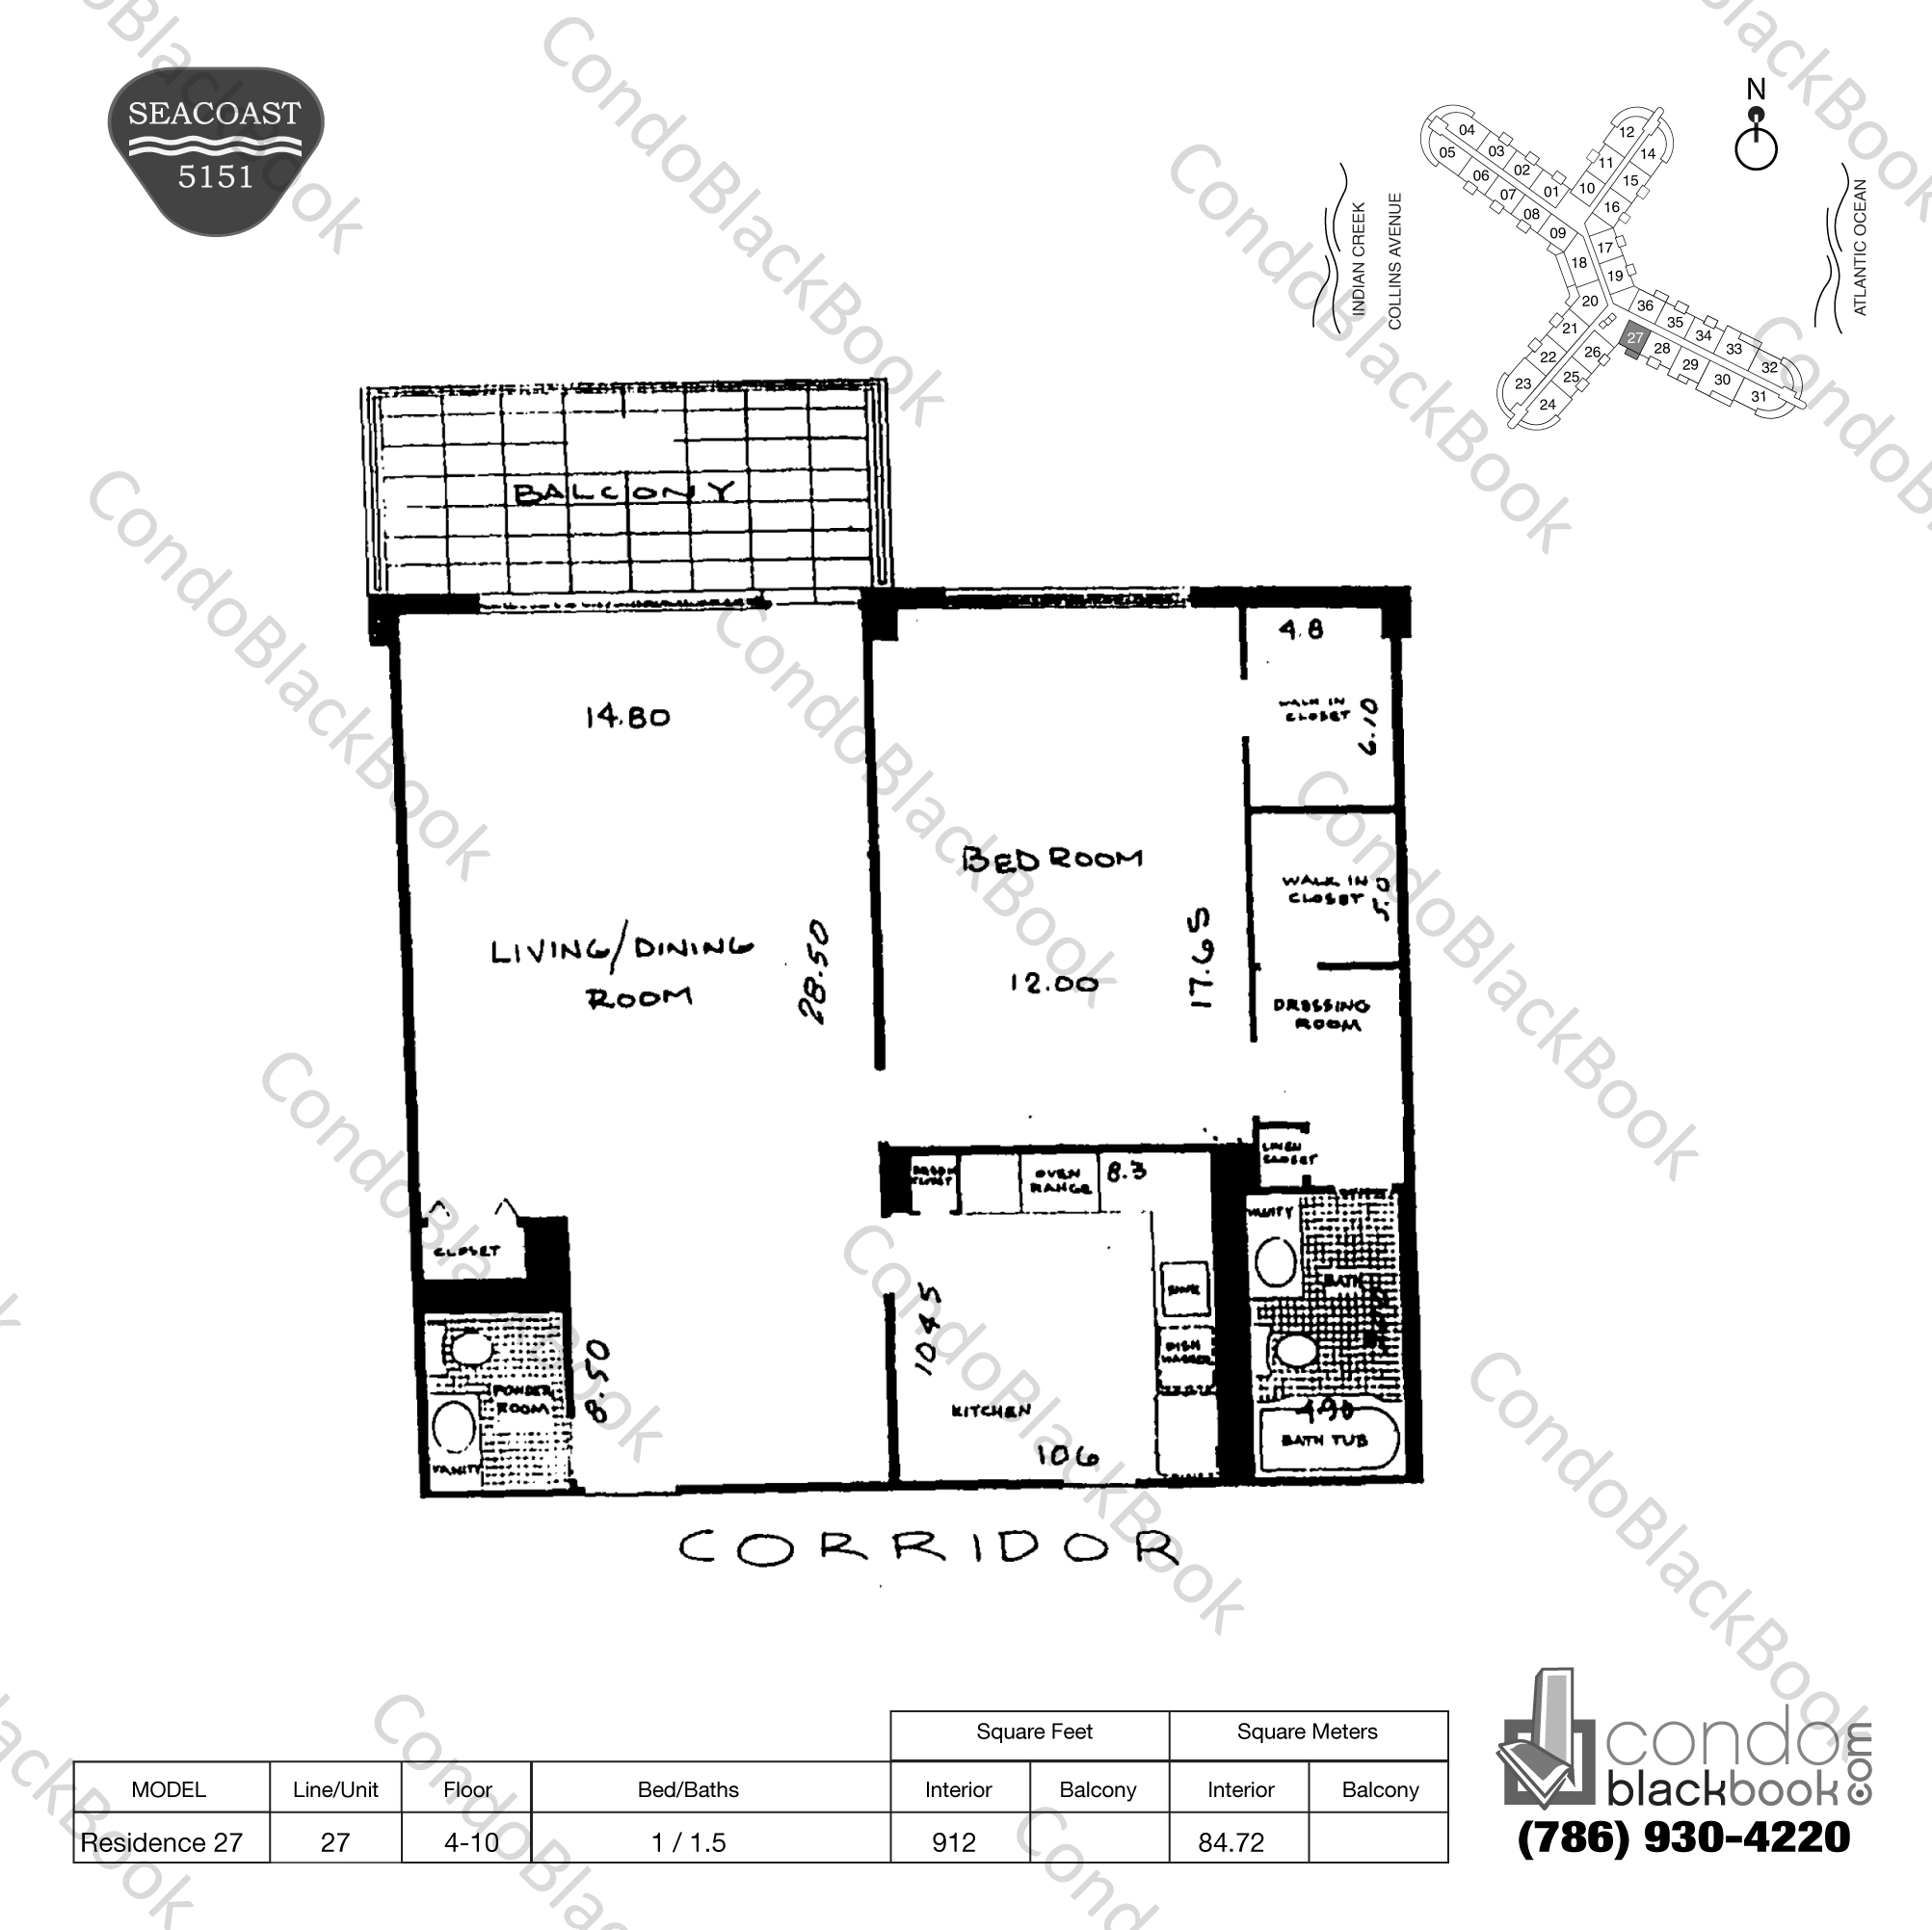 Floor plan for Seacoast 5151 Mid-Beach Miami Beach, model Residence 27, line 27, 1 / 1.5 bedrooms, 912 sq ft